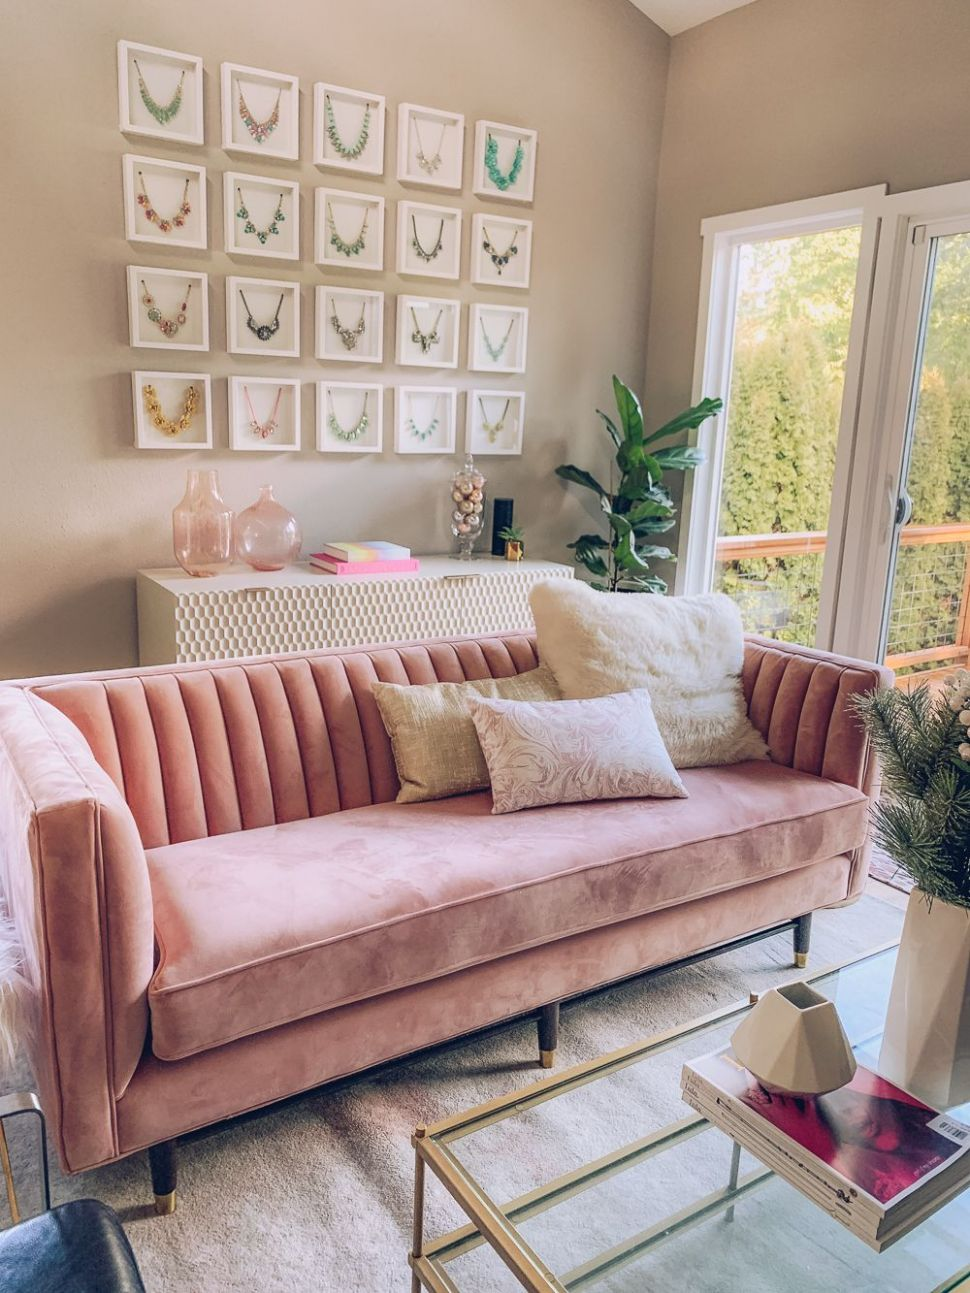 Chic and Modern Blush Pink Living Room | Blush pink living room ..